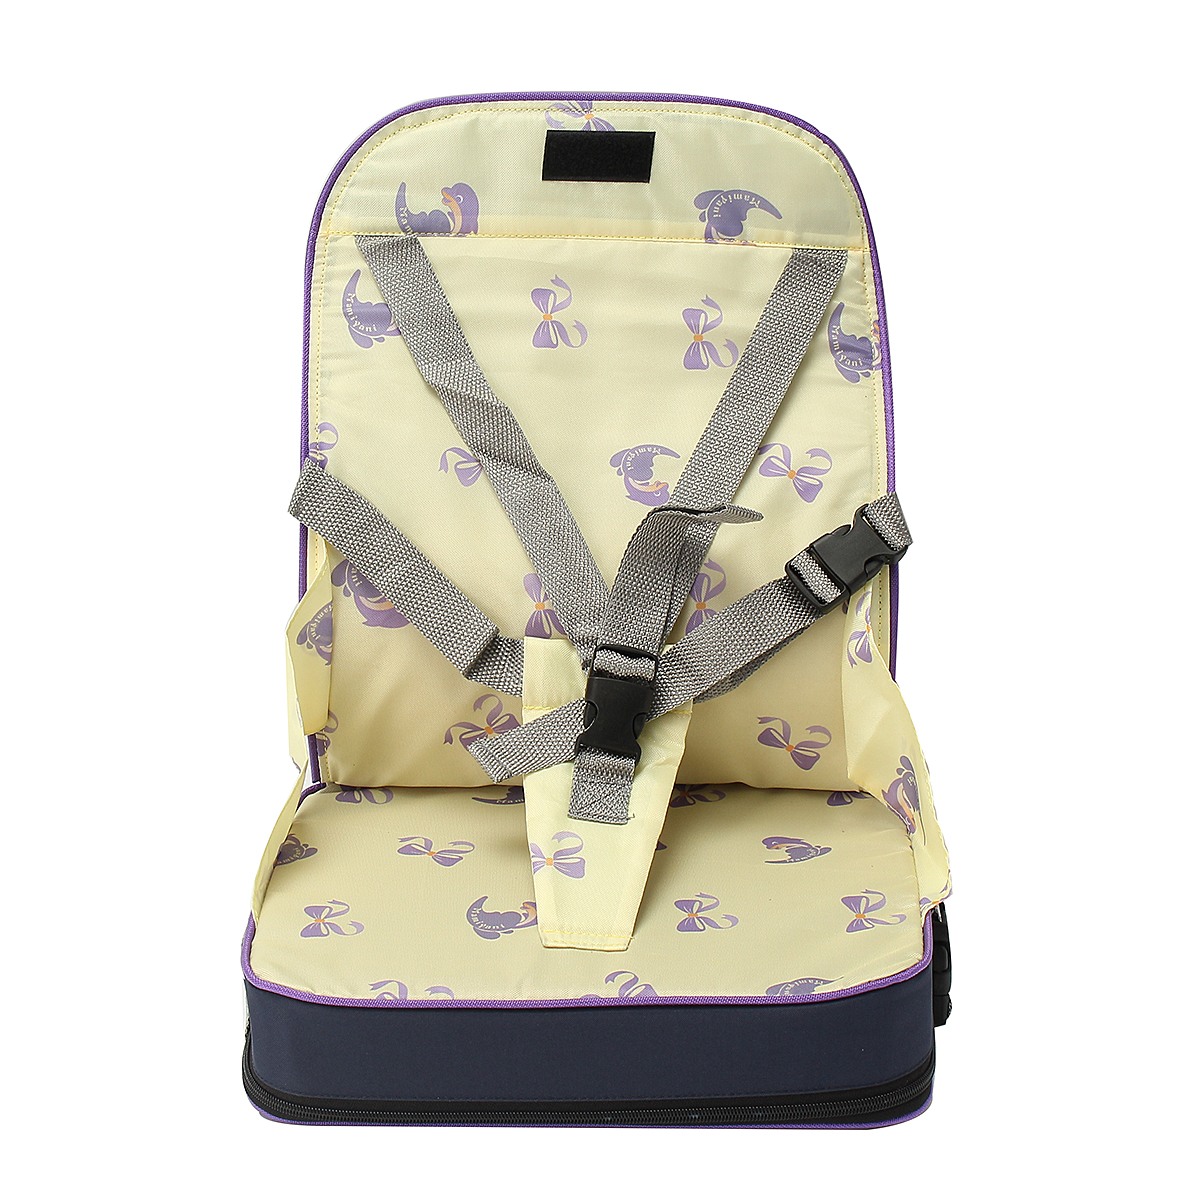 Foldable Baby Feeding Booster Seat Dining High Chair With Harness Safety for Toddler Kids Child,Blue color